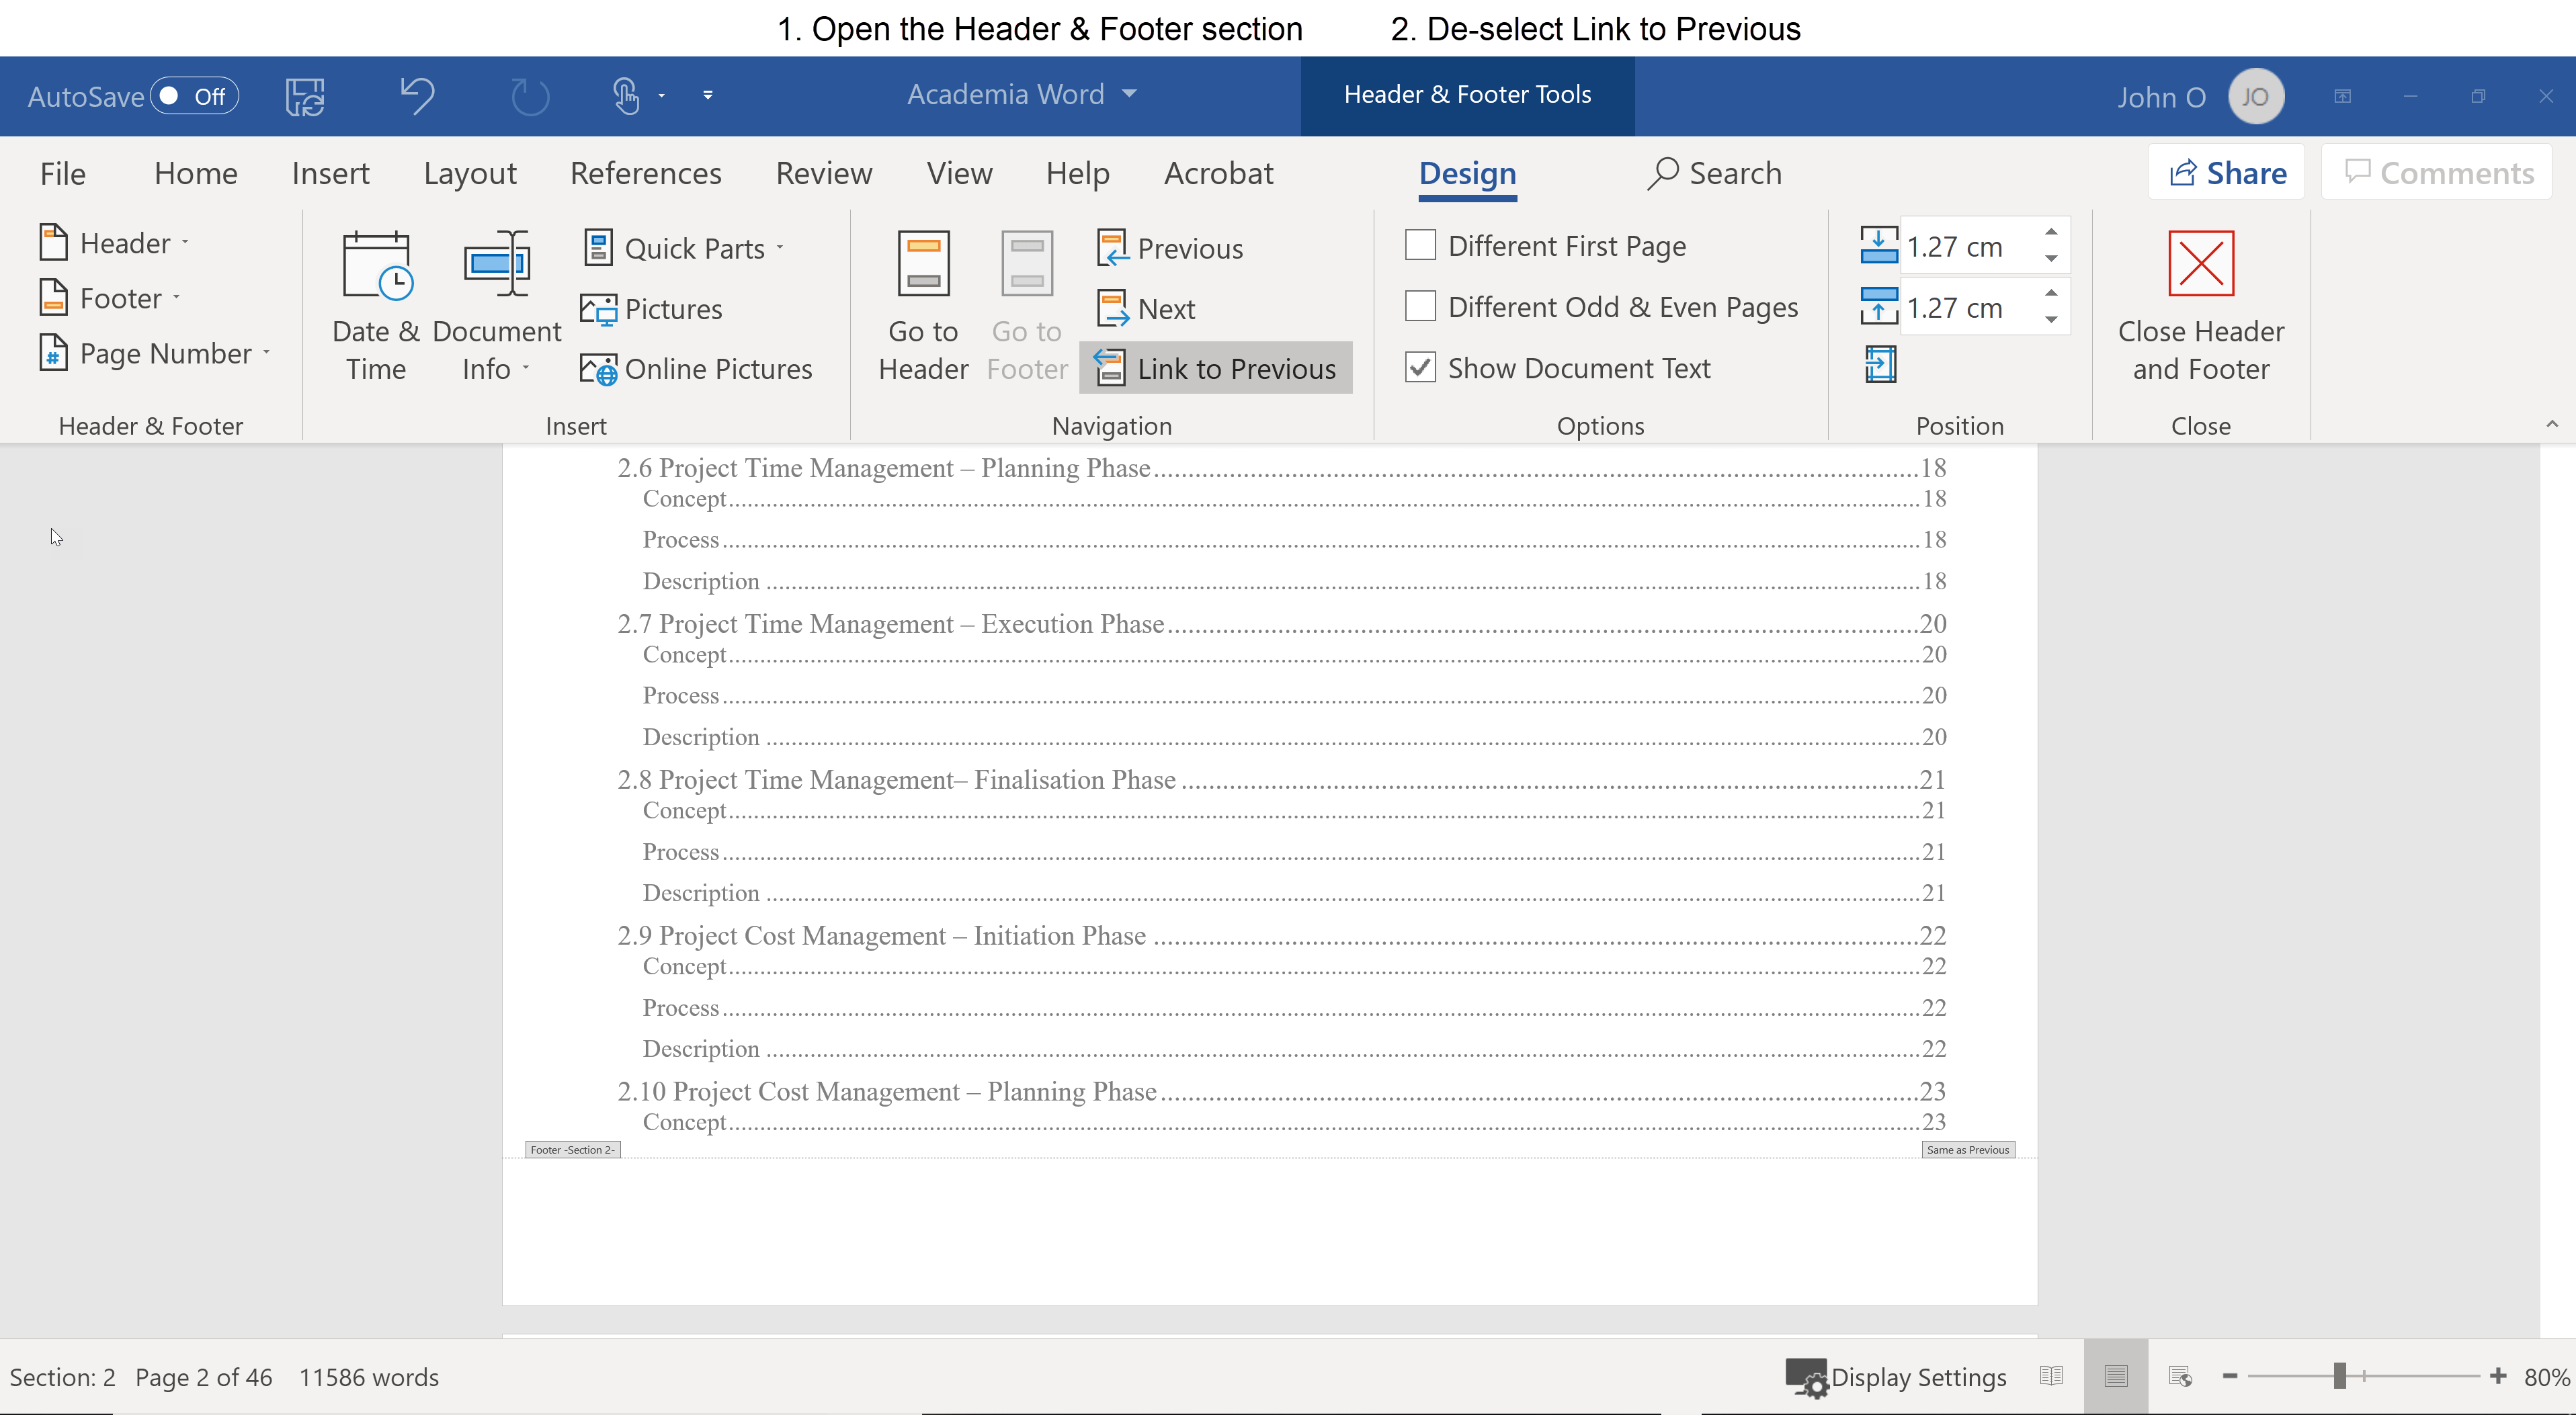 To stop the Section 2 footer from using the information in the Section 1 footer (1) Select the footer in Section 2 (2) De-select Link to Previous